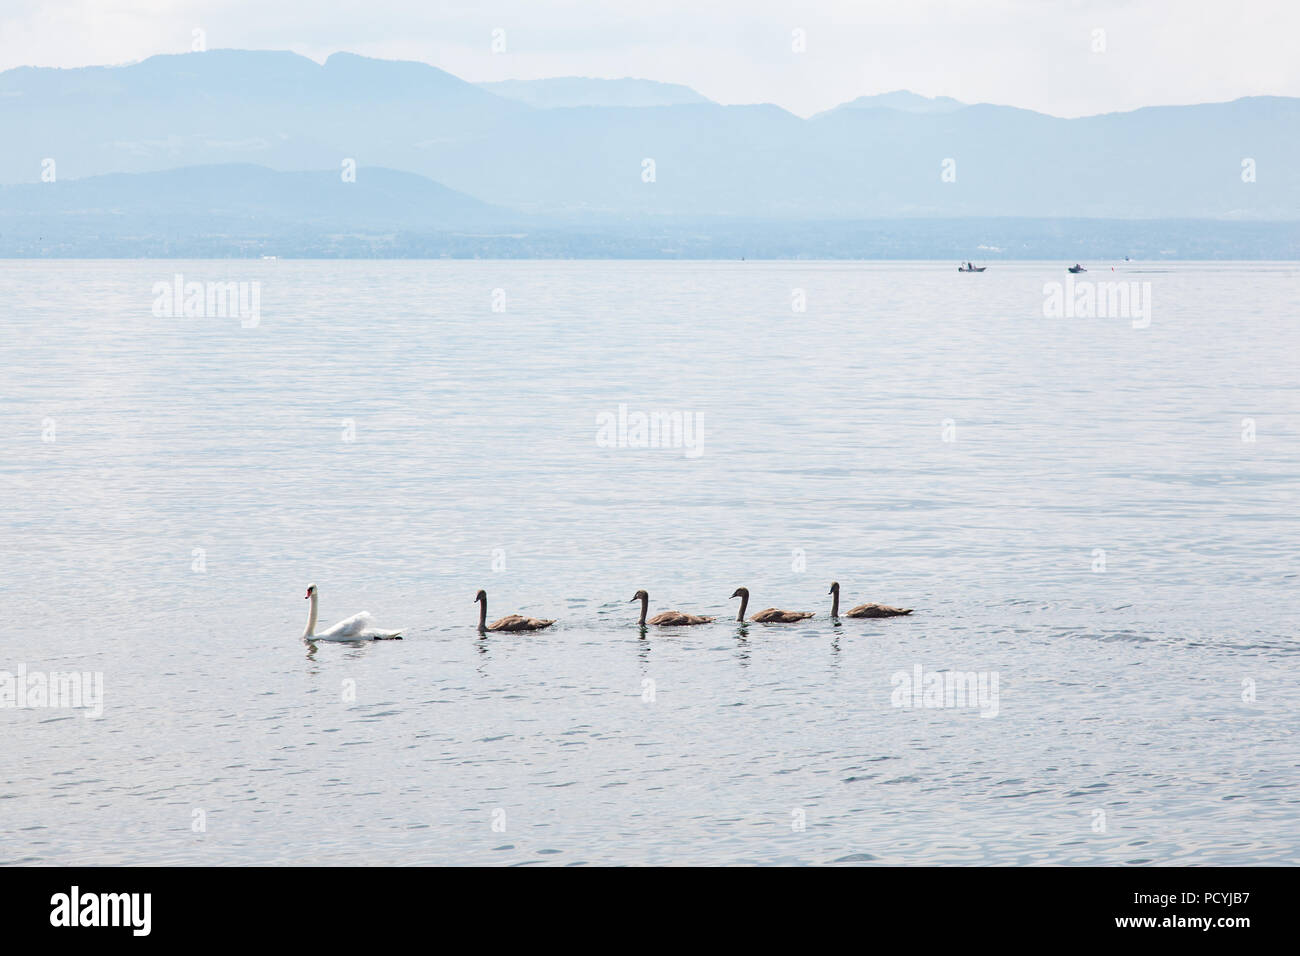 Swan family: mother and four young babies on Geneva Lake (Lake Leman) near Rolle, La Cote region,  Vaud, Switzerland on beautiful sunny summer day - Stock Image